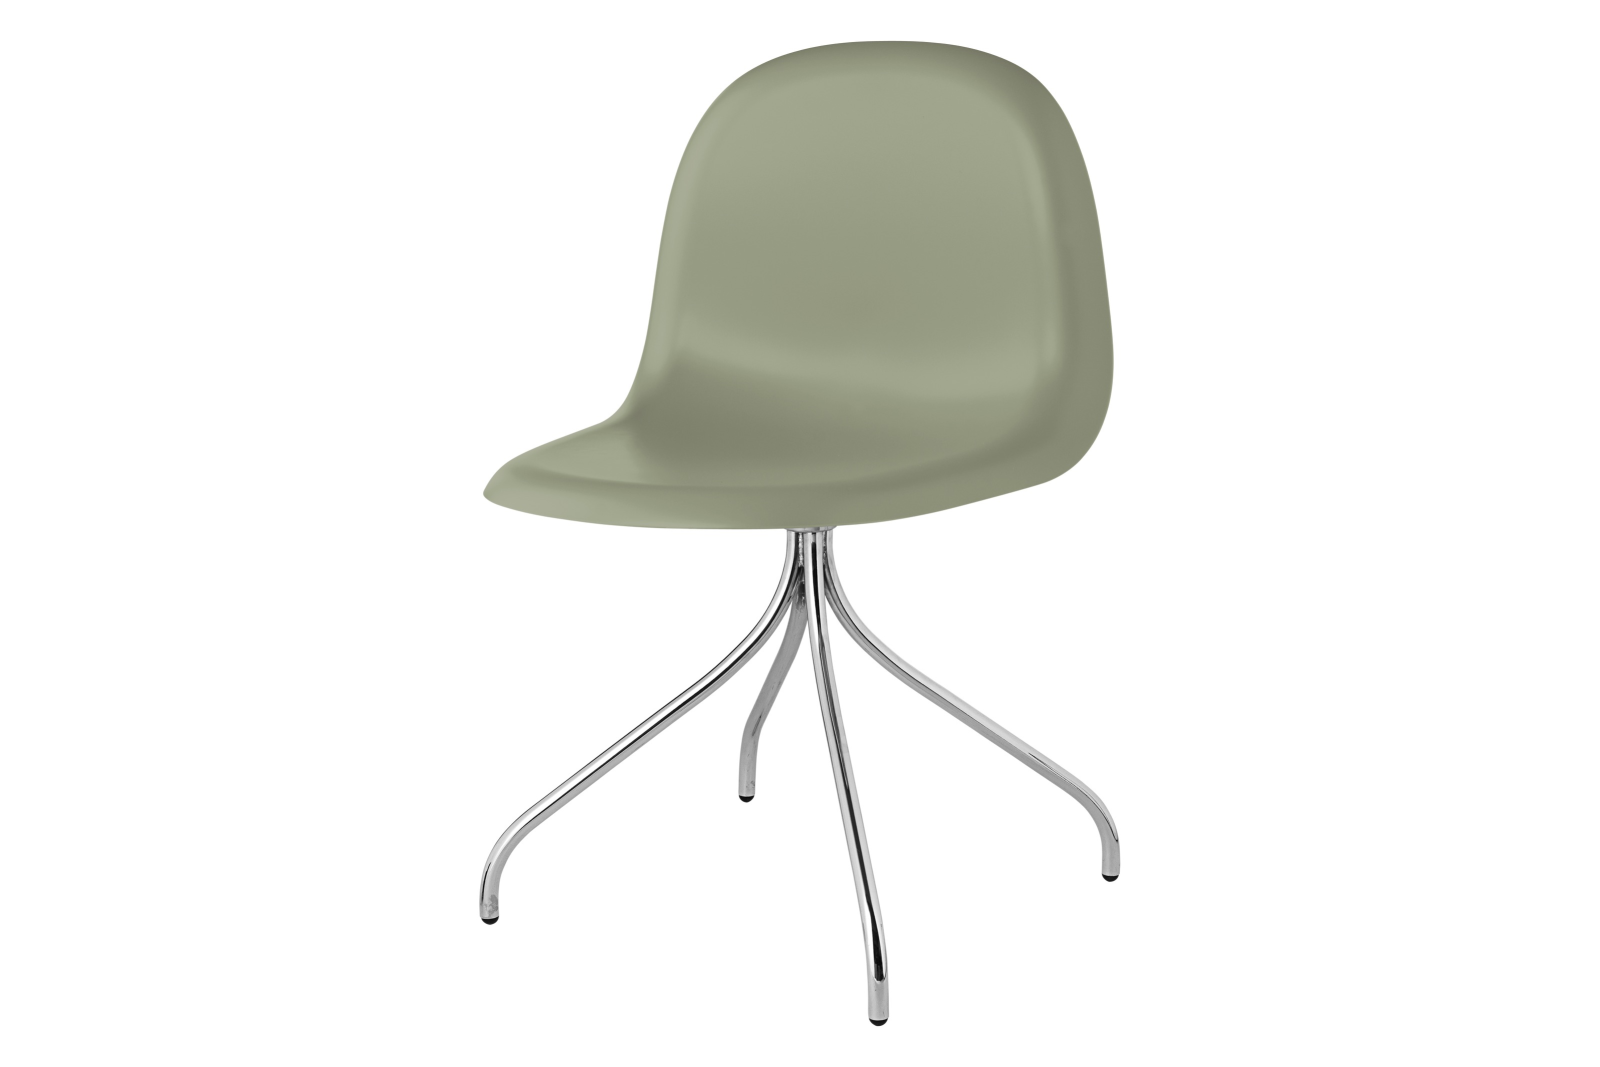 Gubi 3D Swivel Base Dining Chair - Unupholstered Gubi HiRek Mistletoe, Gubi Metal Chrome